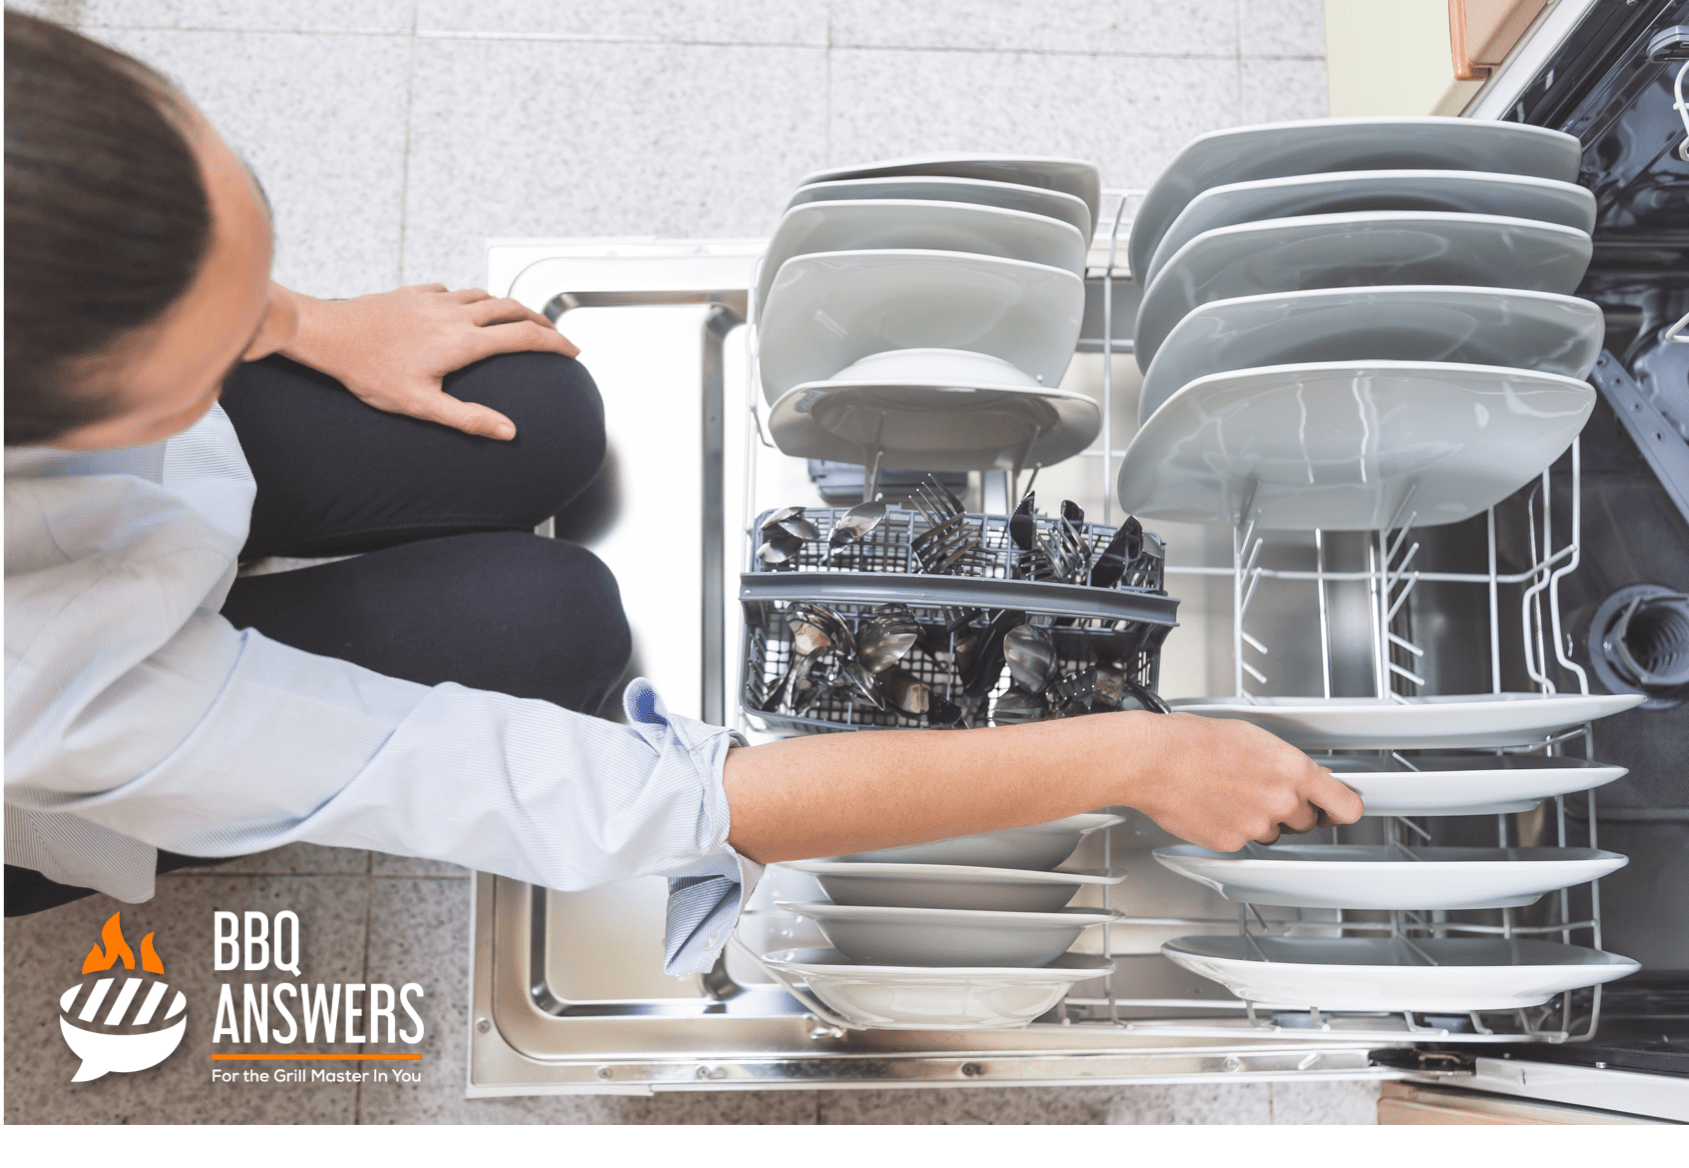 Cleaning BBQ Grills in Dishwasher   BBQanswers